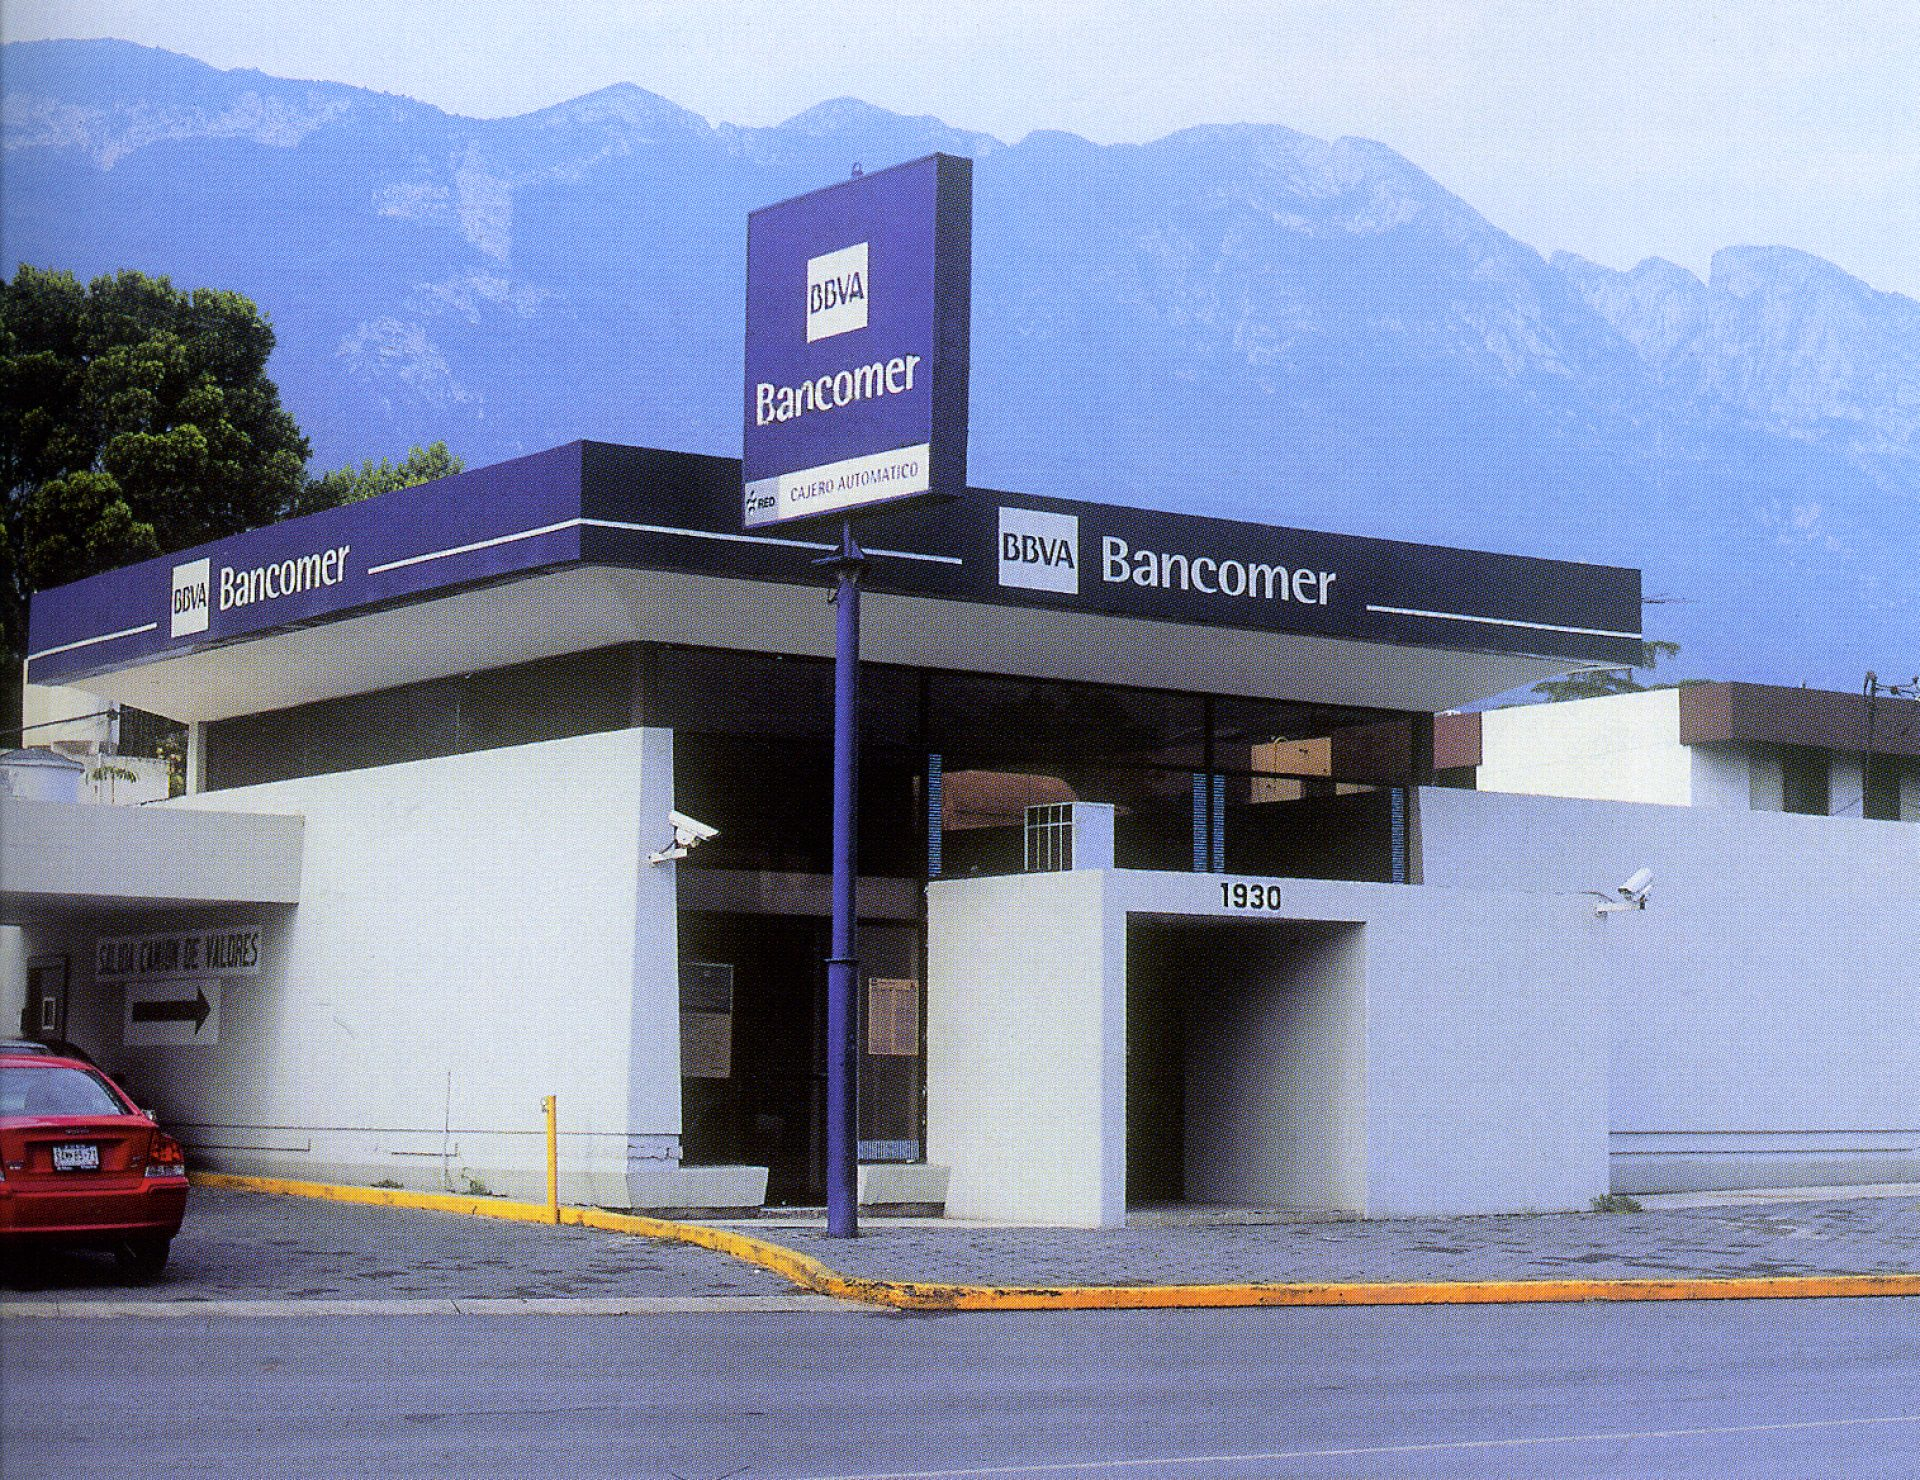 Bancomer: A Successful Track Record In The 84-year History Of BBVA